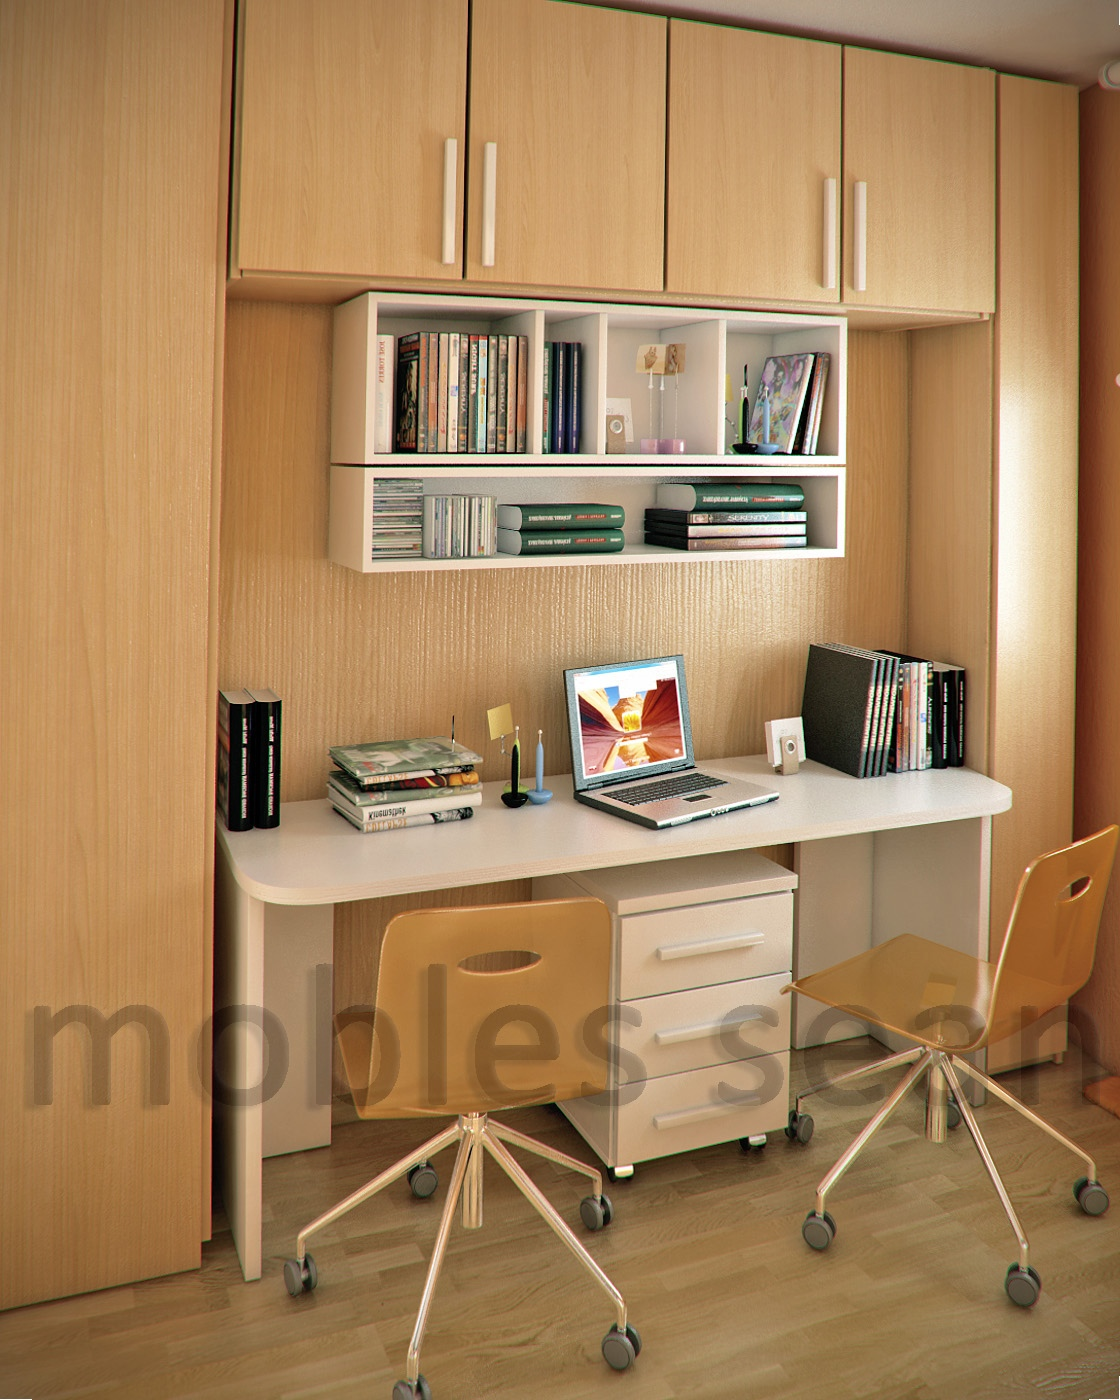 Small Study Room Design 1120 x 1400